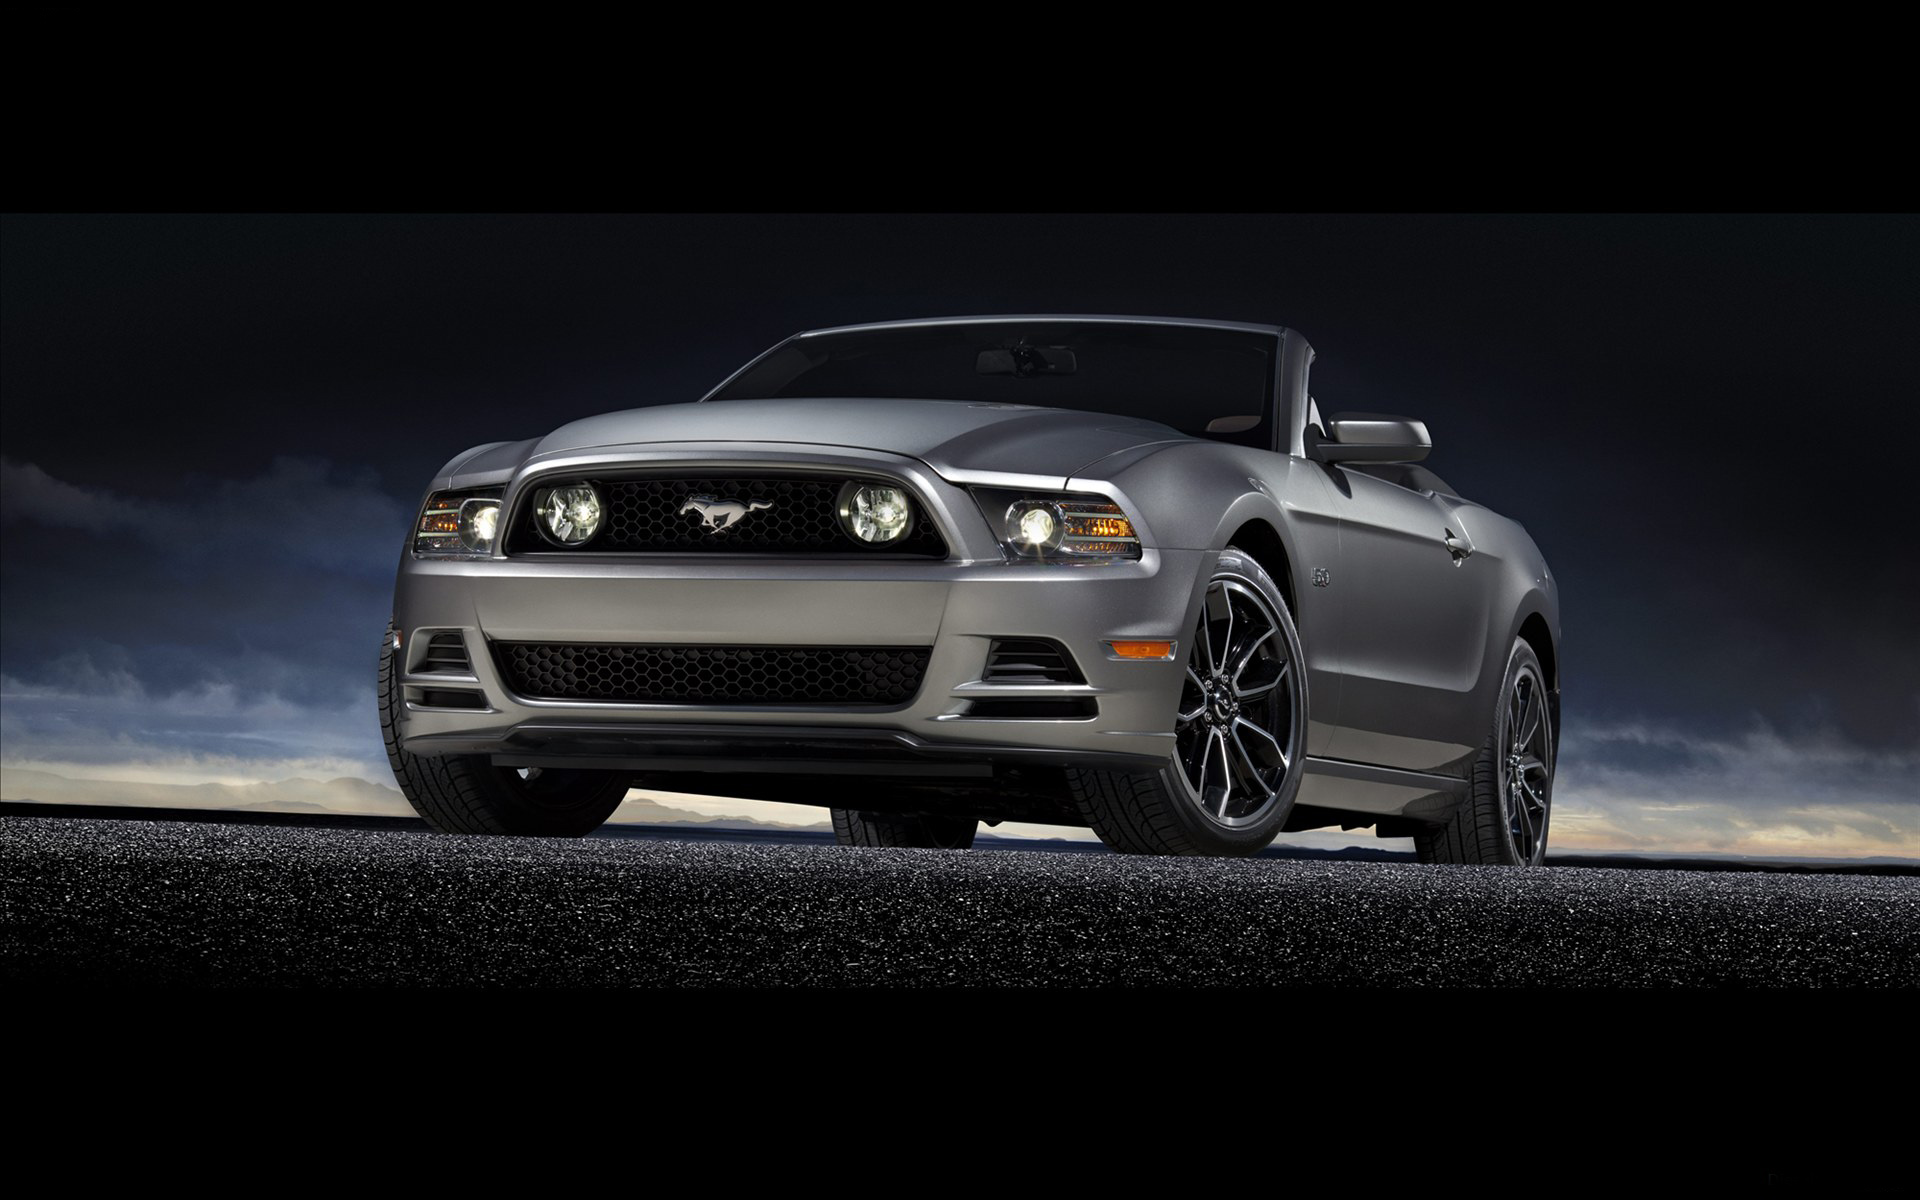 1920x1200 - Ford Mustang GT500 Wallpapers 24